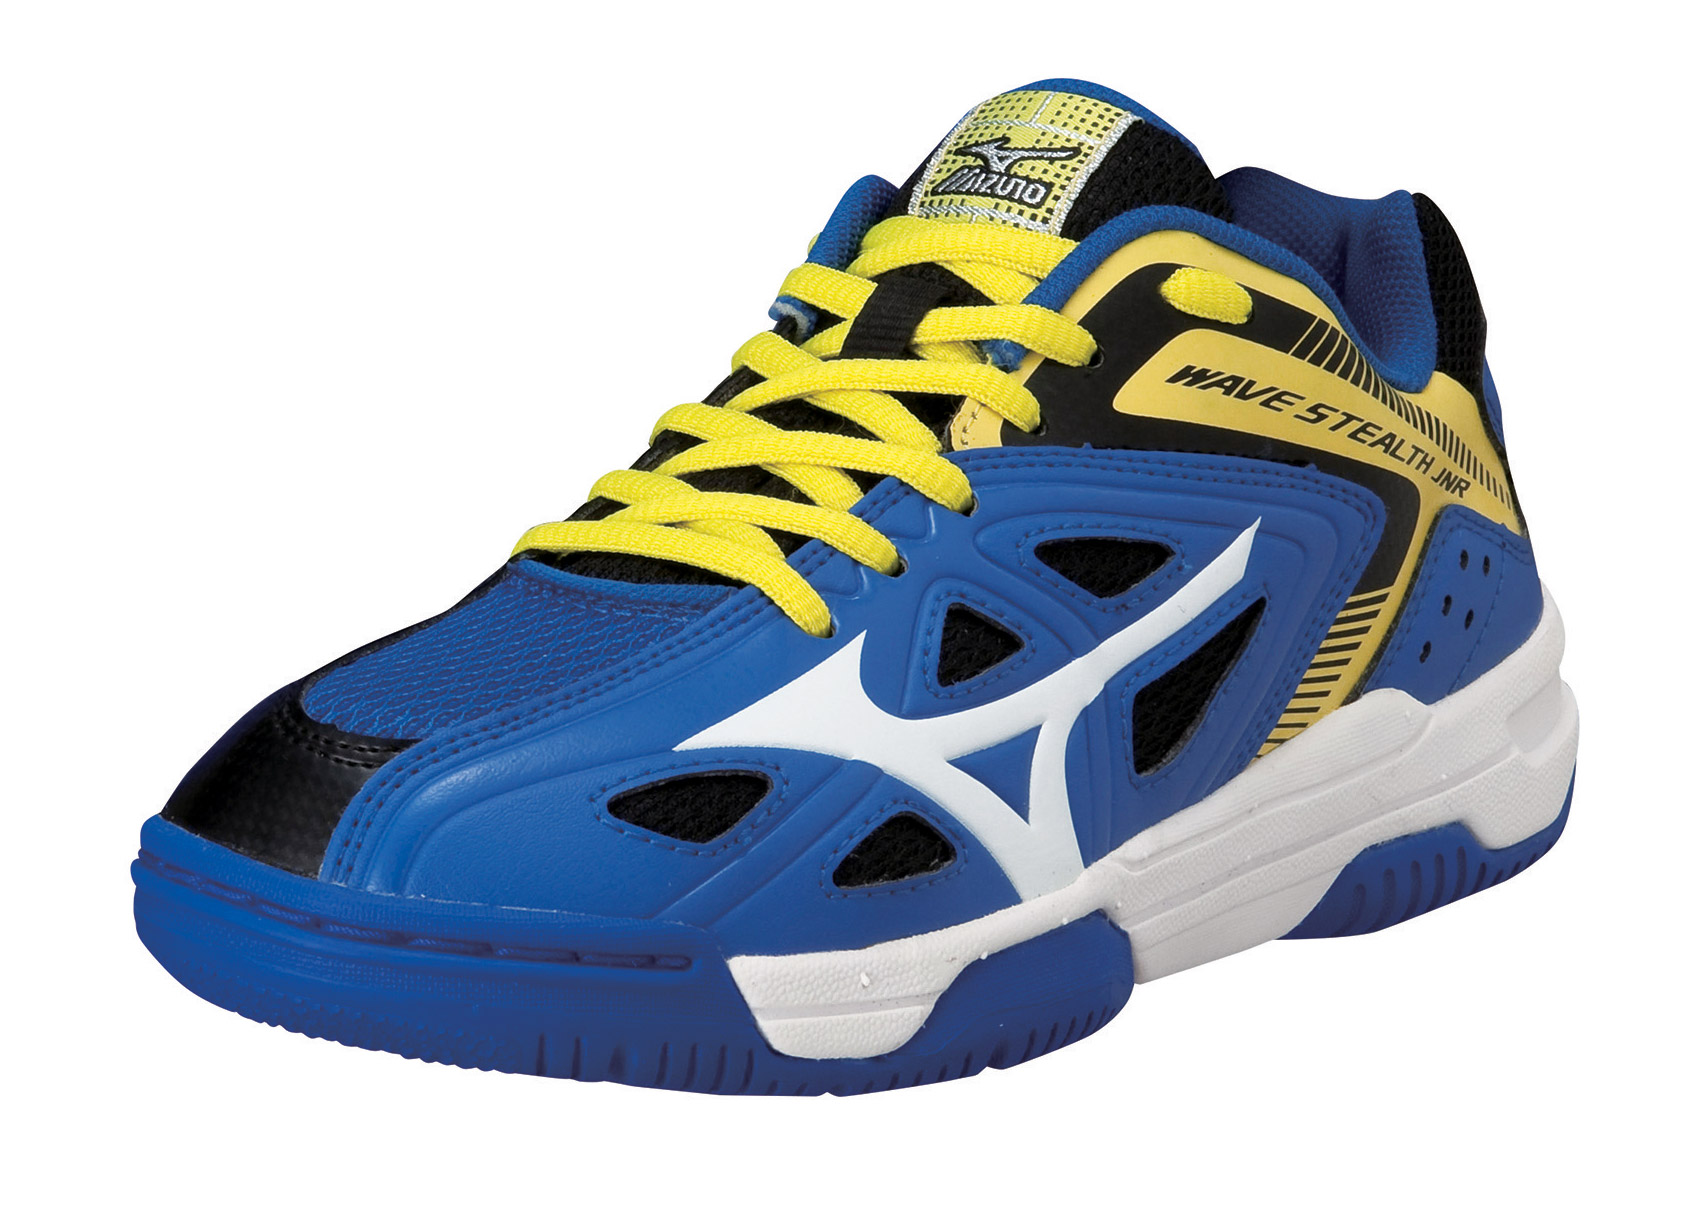 Mizuno Wave Stealth 3 X1GC140524 EUR 36